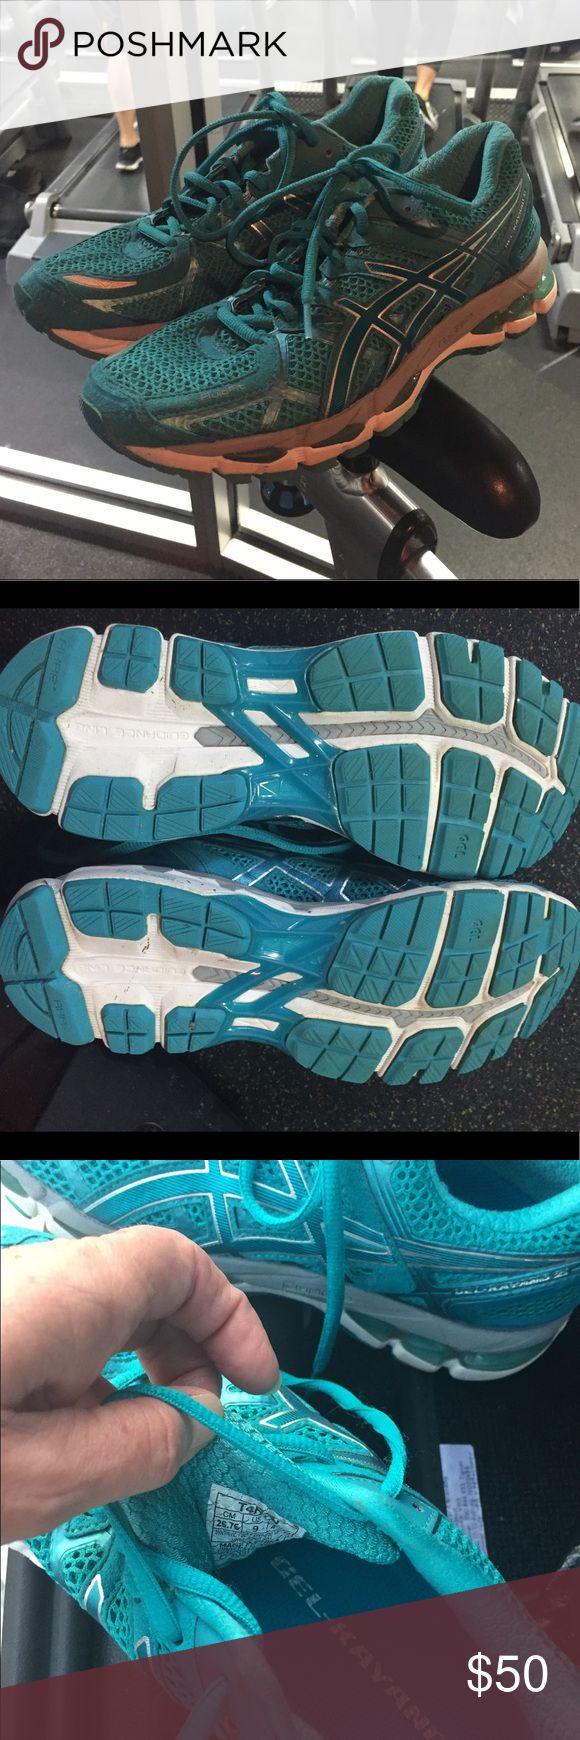 Gel-Kayano 21 Running Shoes Used in 1 sprint triathlon, 2.5 miles, and two 5K runs. Moved to cycling shoes now due to injury. These are great running shoes, lots of comfort and performance life left. Aside from a few scuffs they are really like new. Shoes